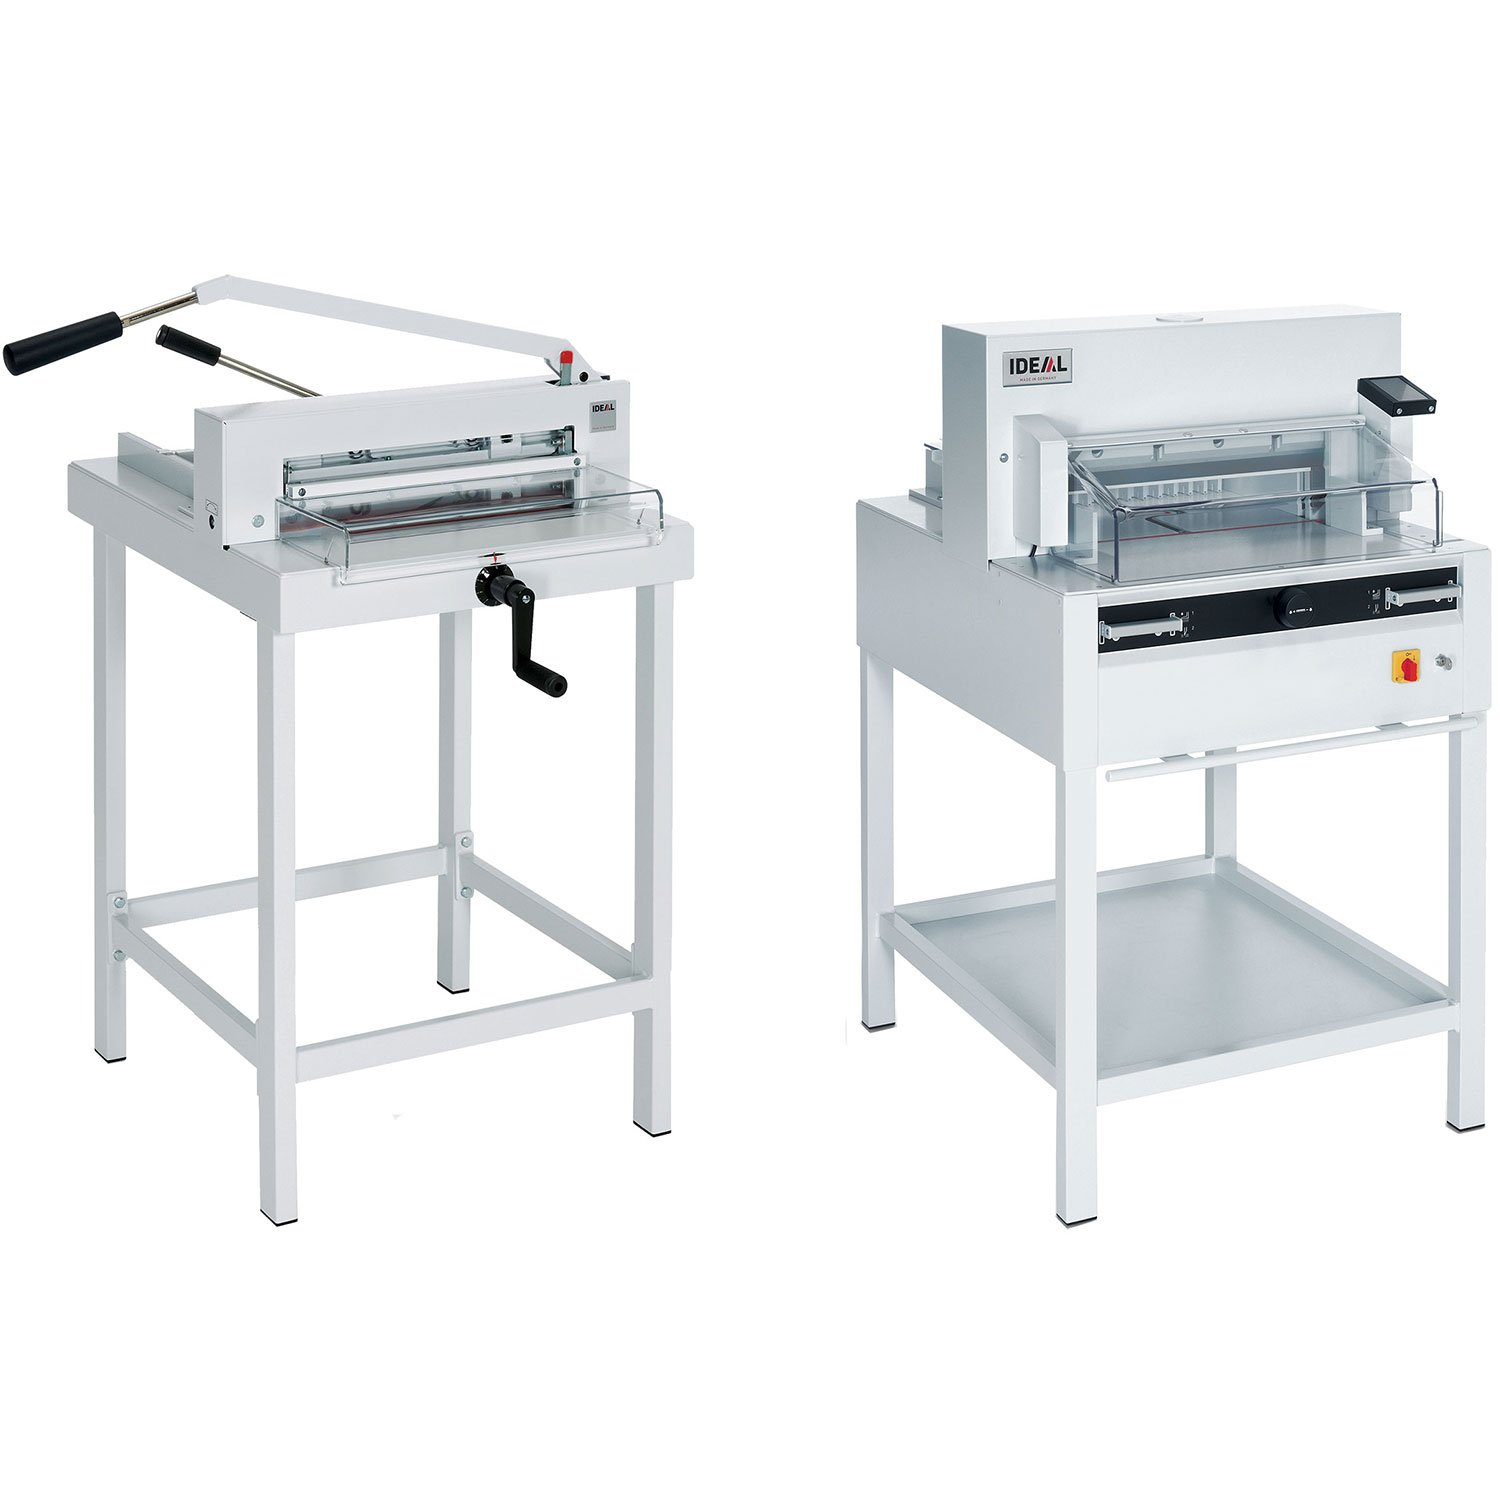 IDEAL Guillotines (Ream-Cutters)